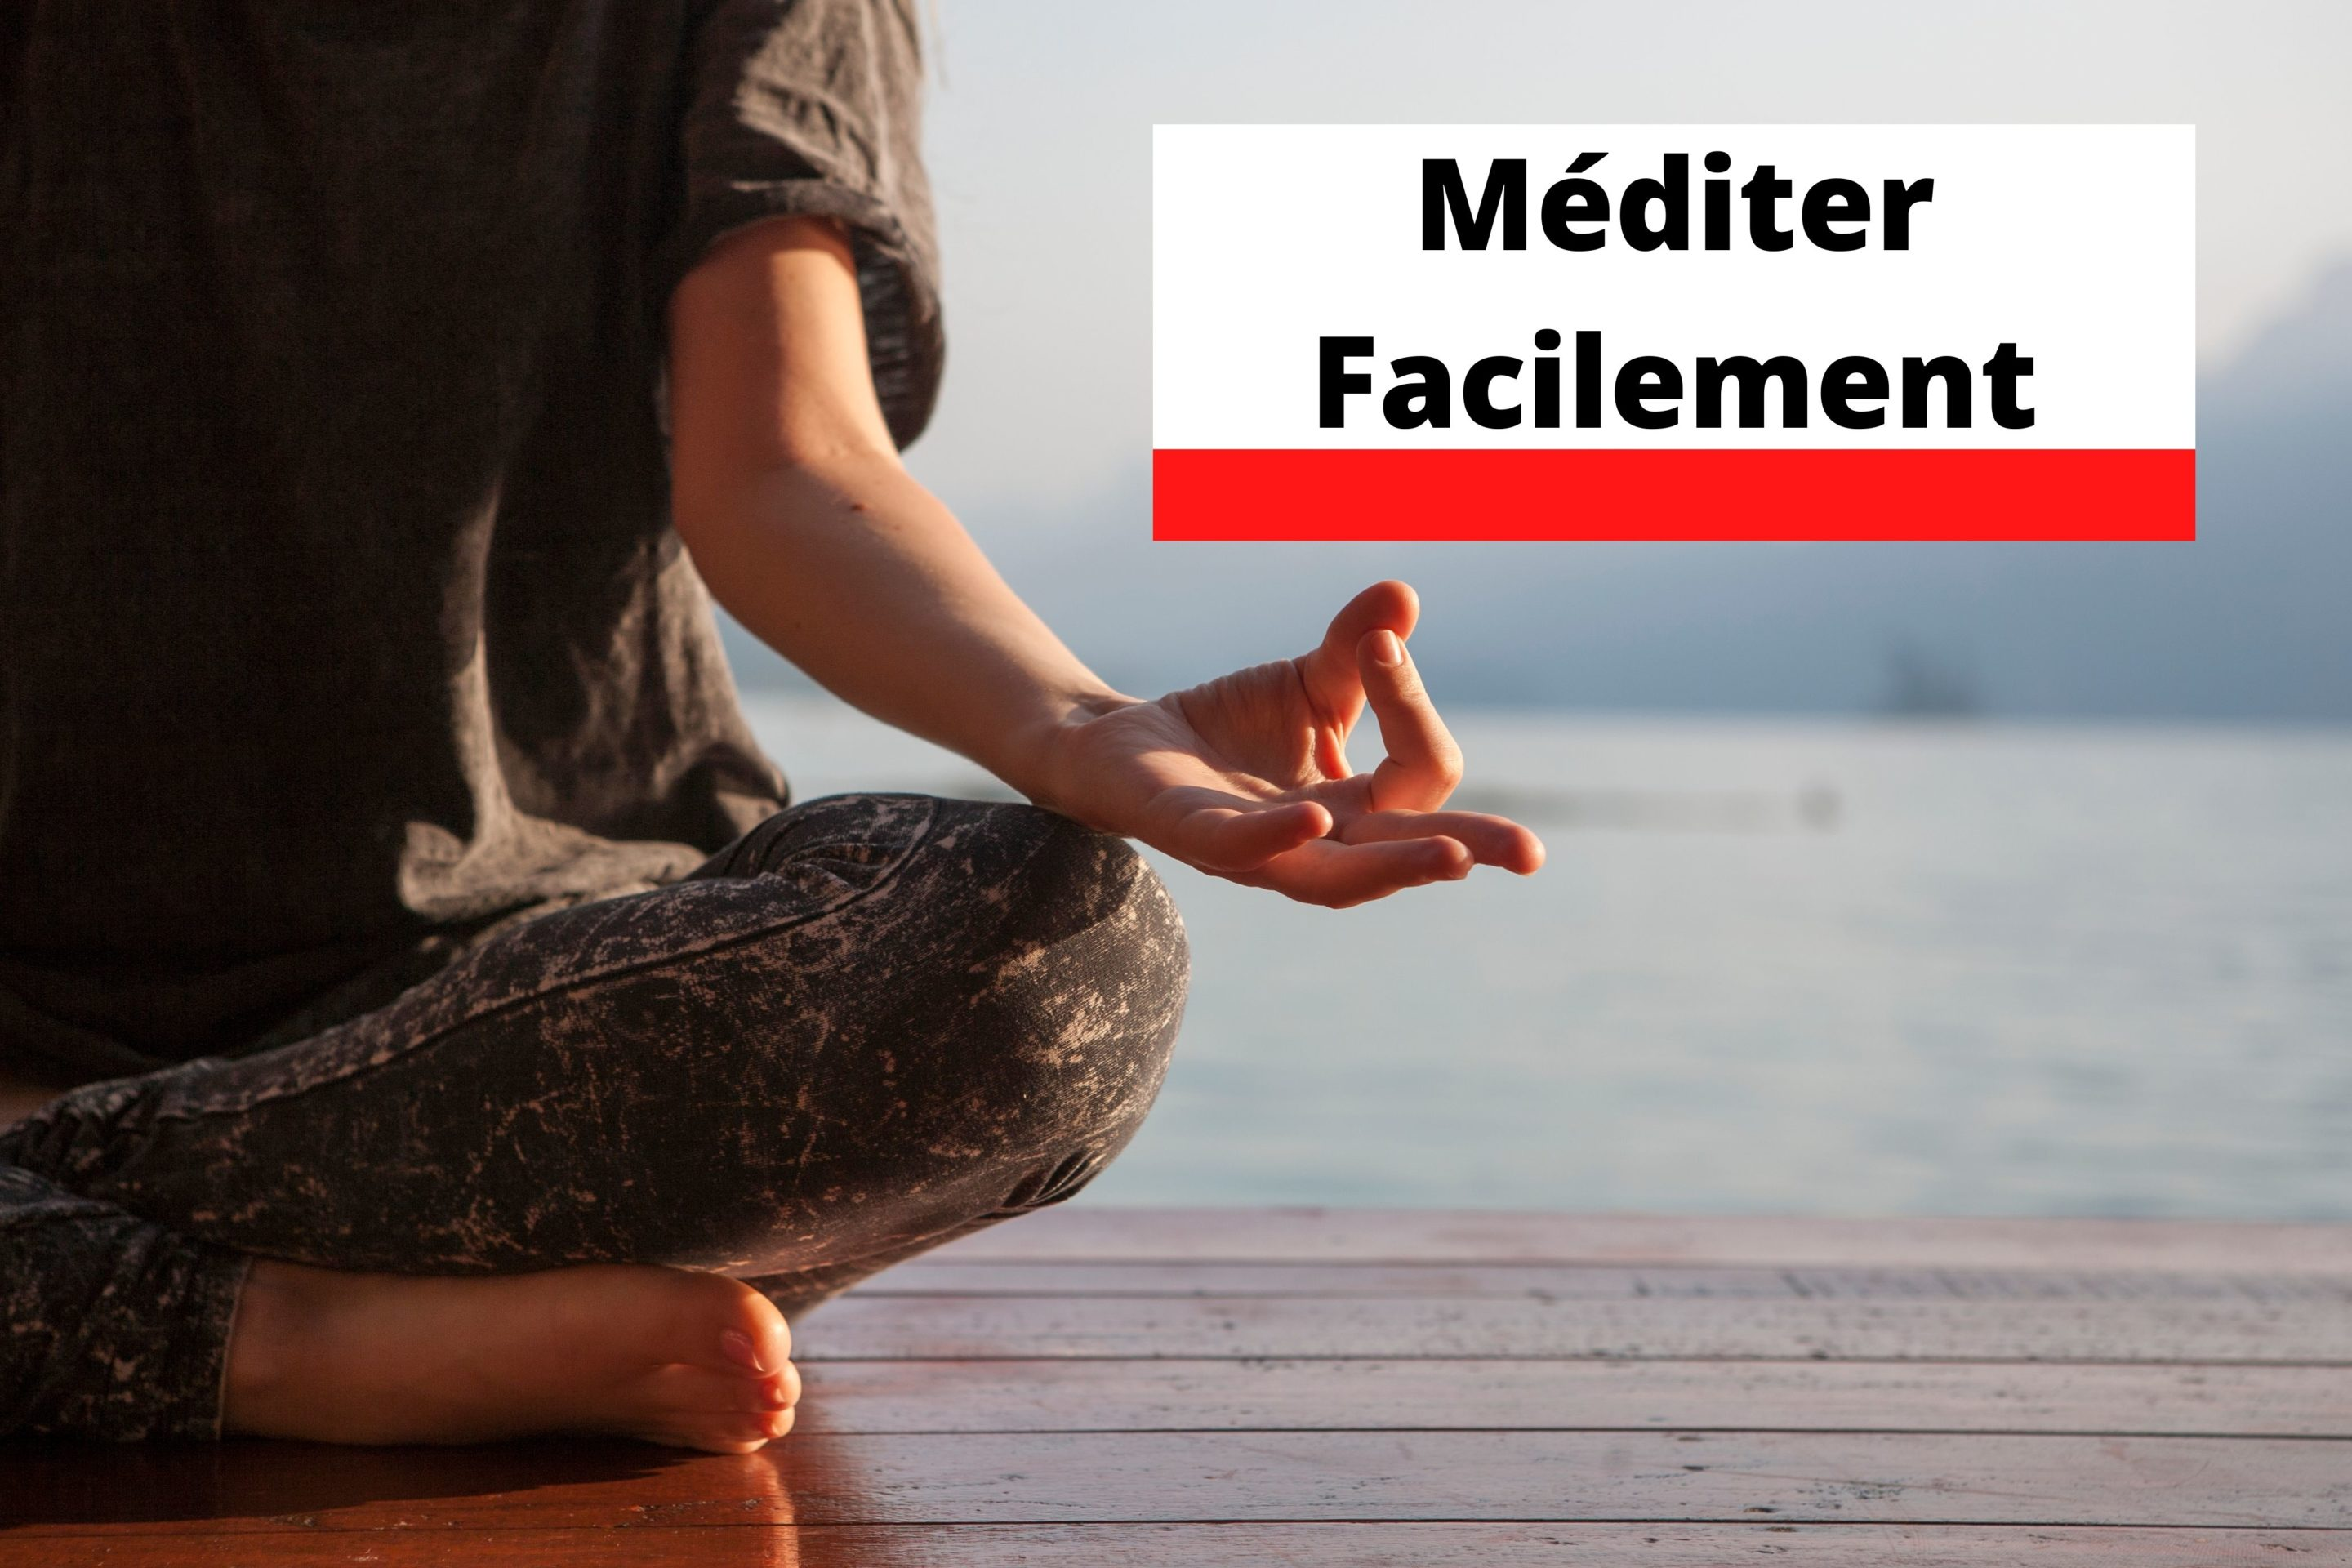 méditer facilement